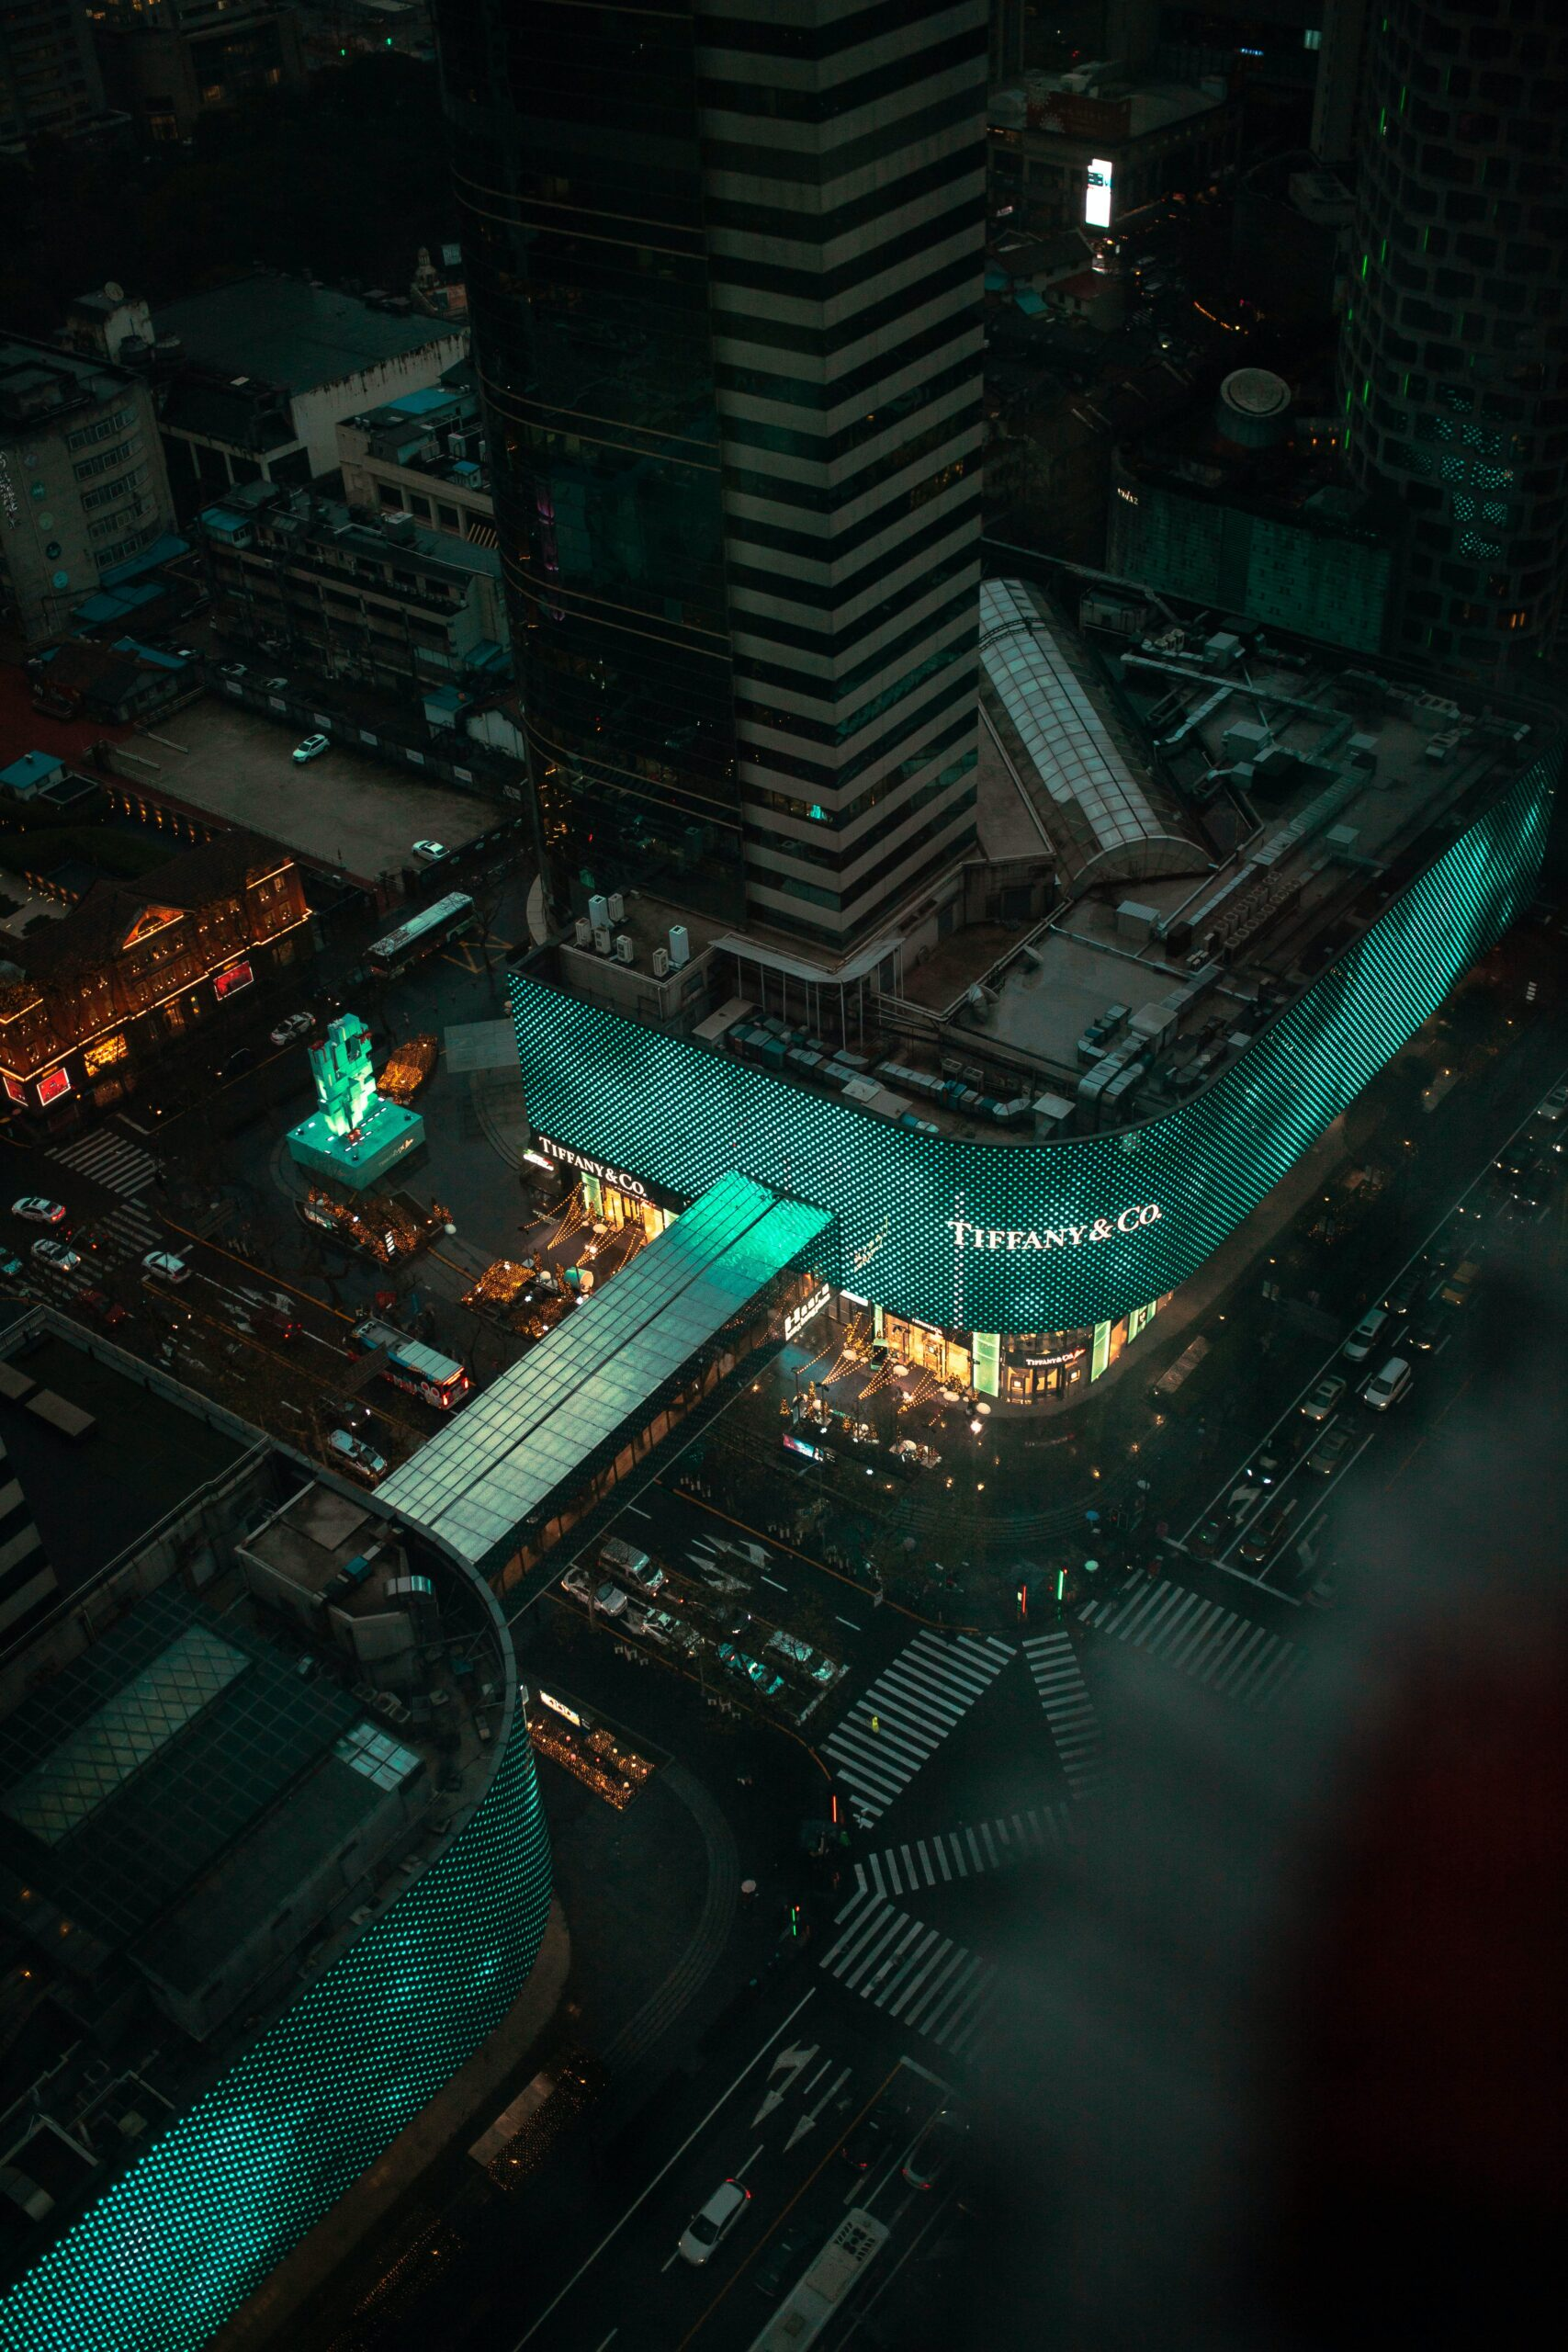 An aerial photo of Tiffany and Co department store